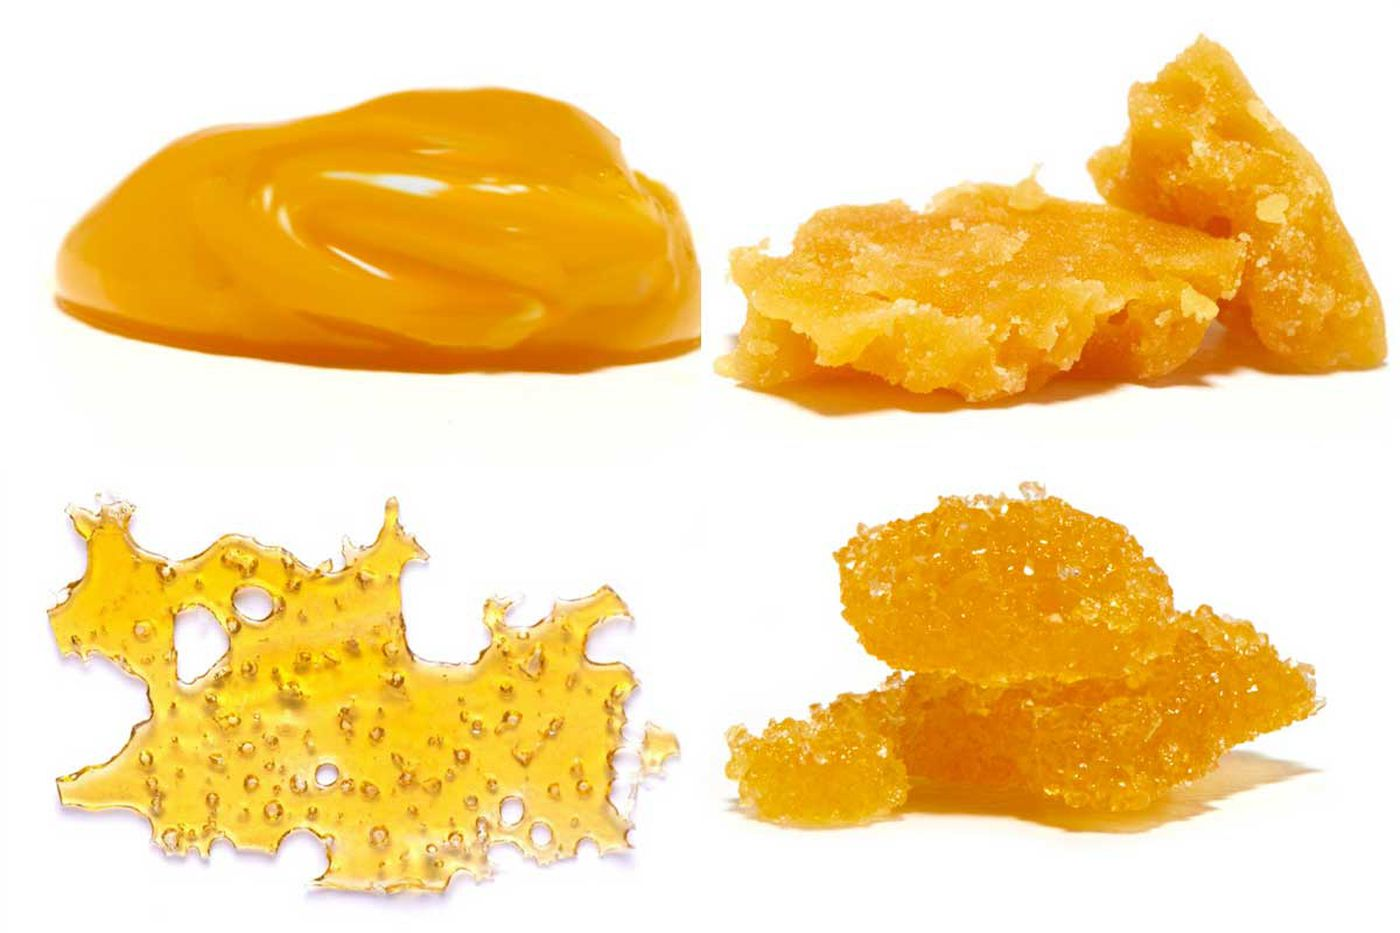 decarb wax